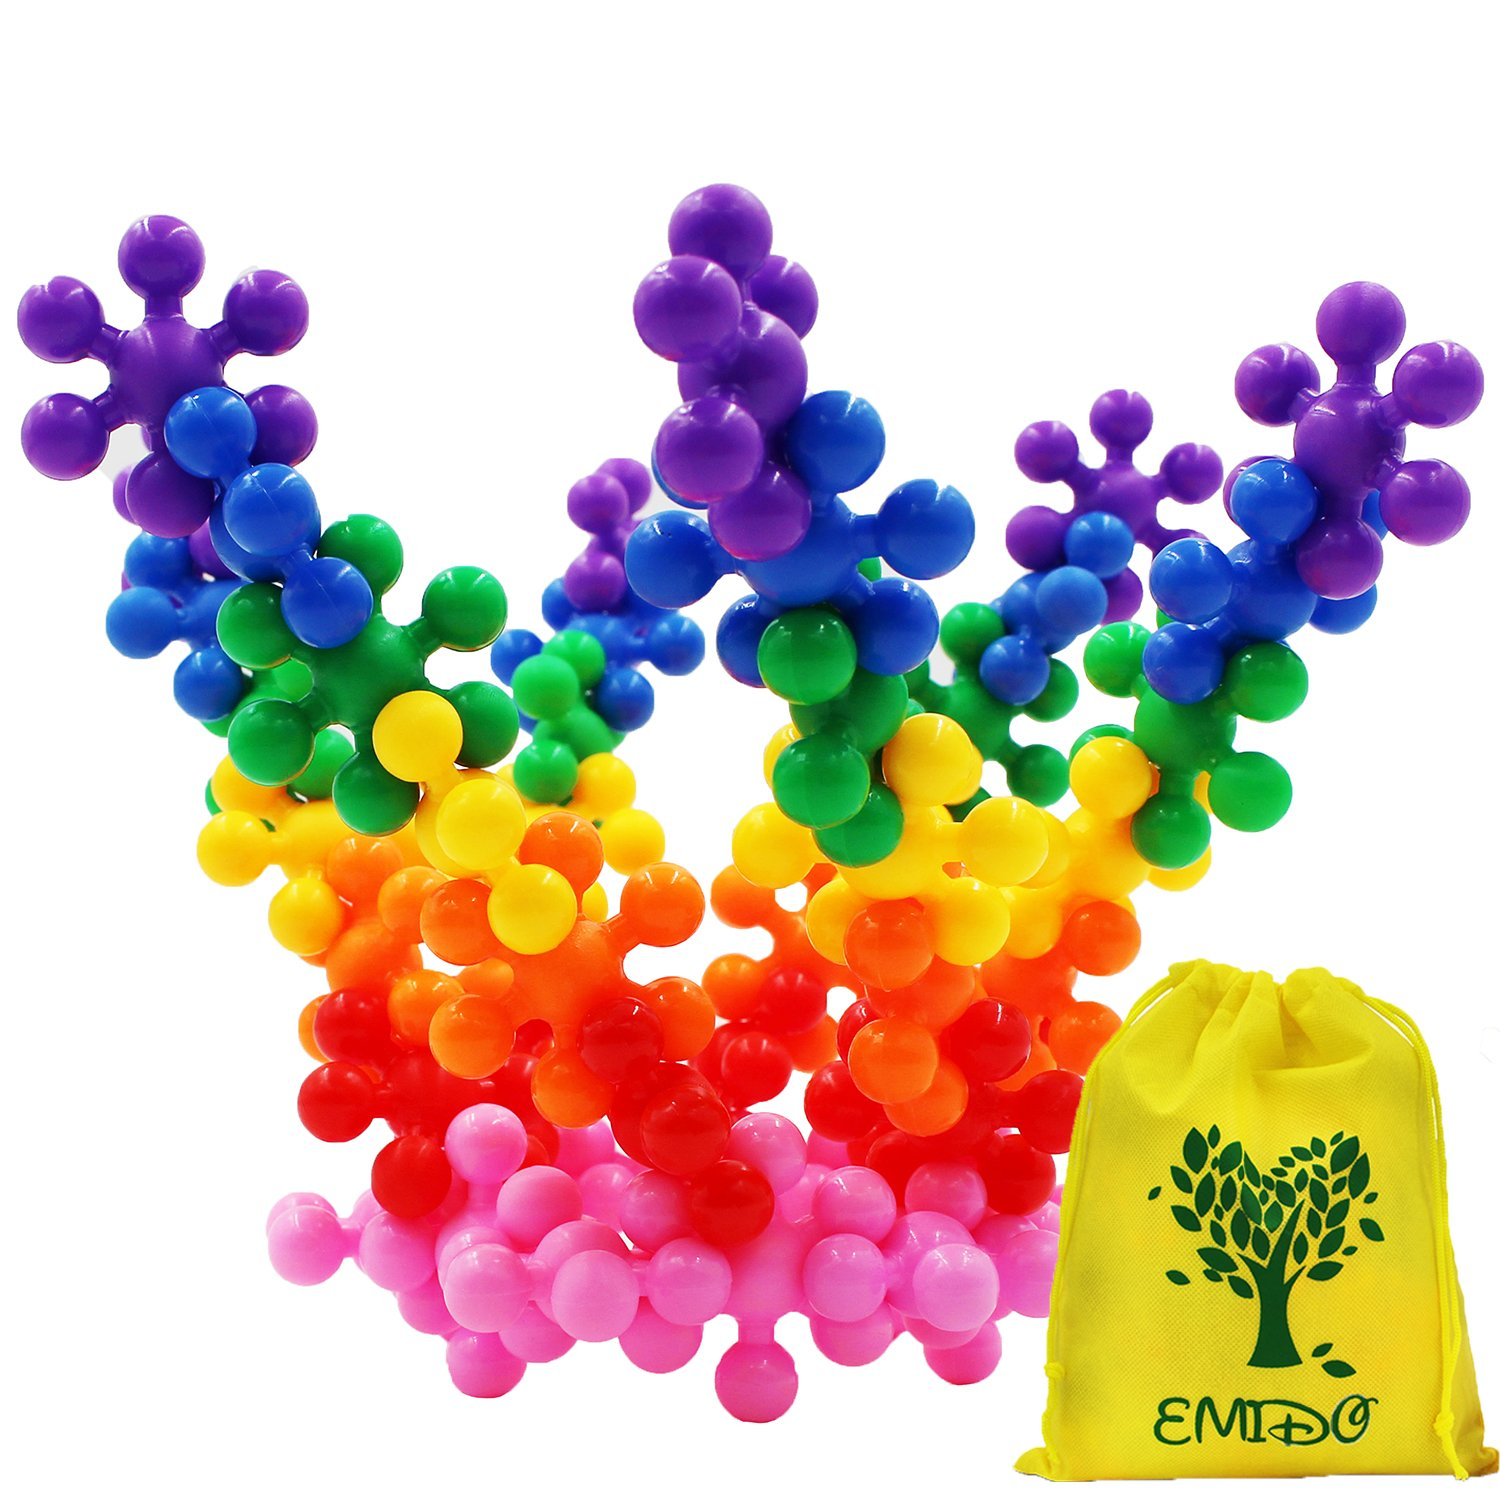 EMIDO Building Blocks Kids Educational Toys STEM Toys Building Discs Sets Interlocking Solid Plastic for Preschool Kids Boys and Girls, Safe Material for Kids - 120 pieces with Storage Bag Review